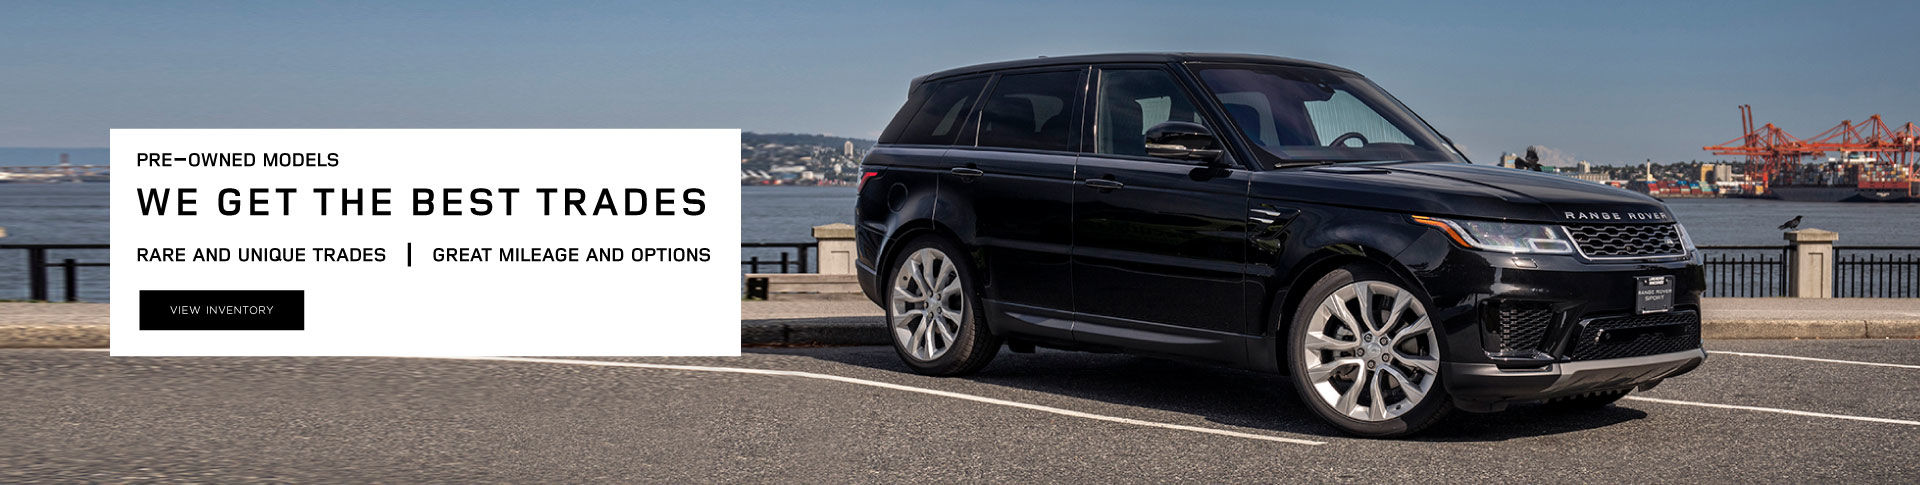 Land Rover Pre-Owned Special